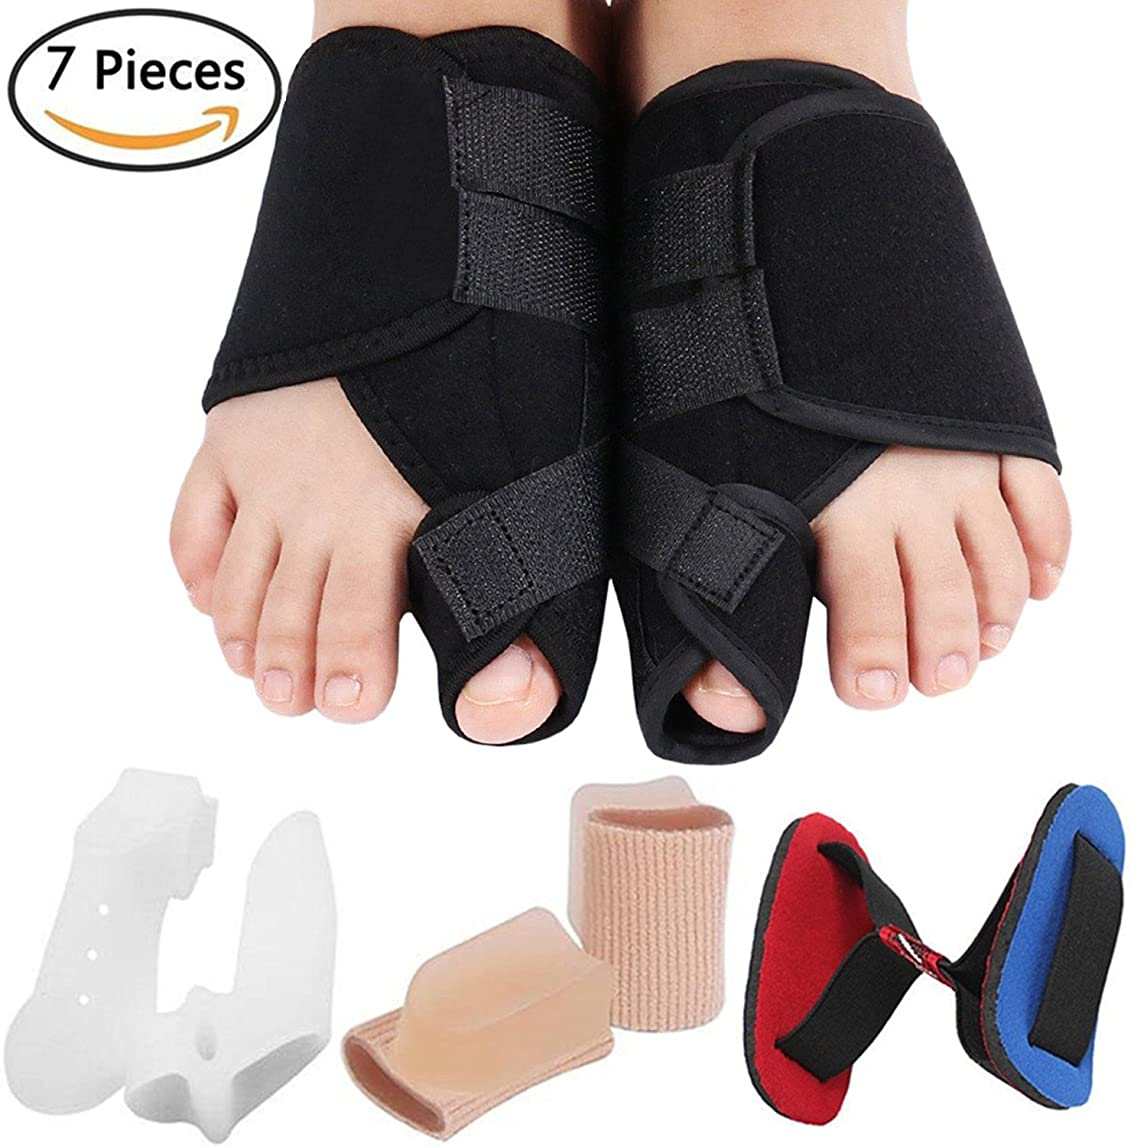 劣る物理学者教育学Bunion Corrector Bunion Relief Kit, Bunion Splint Toe Straightener Corrector for Hallux Valgus, Big Toe Joint, Hammer Toes, Splint Aid Surgery Treatment for Women and Men